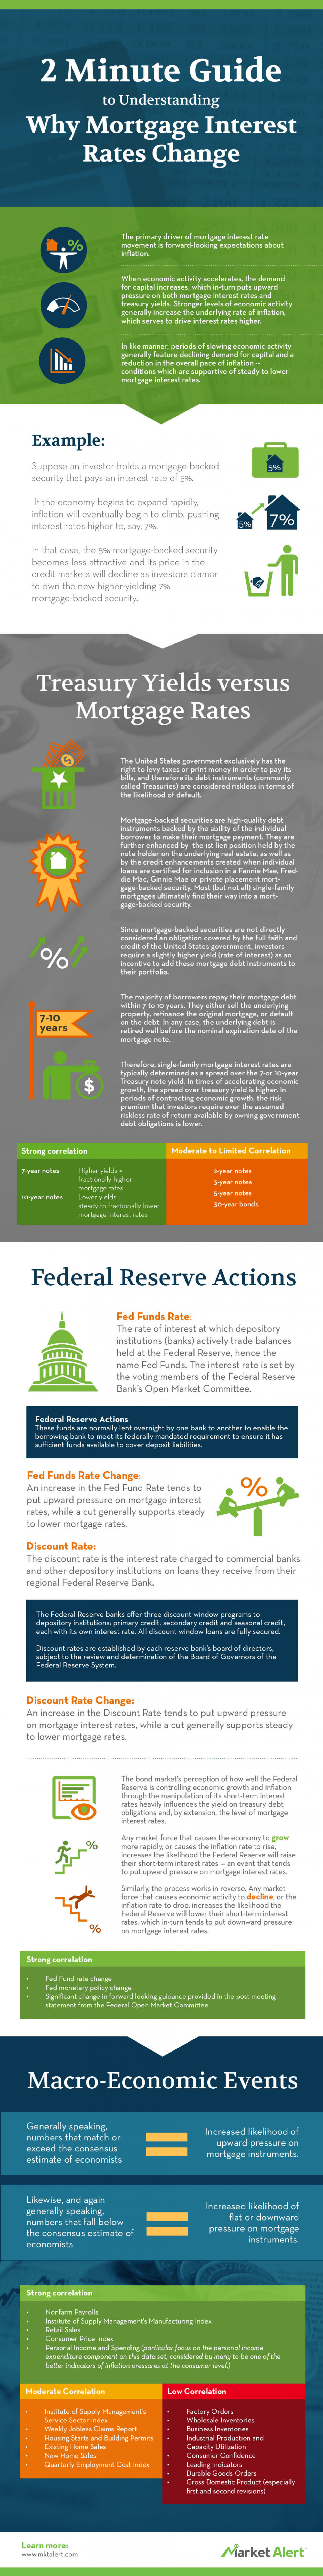 2 minute guide to understanding why mortgage interest rates change Infographic